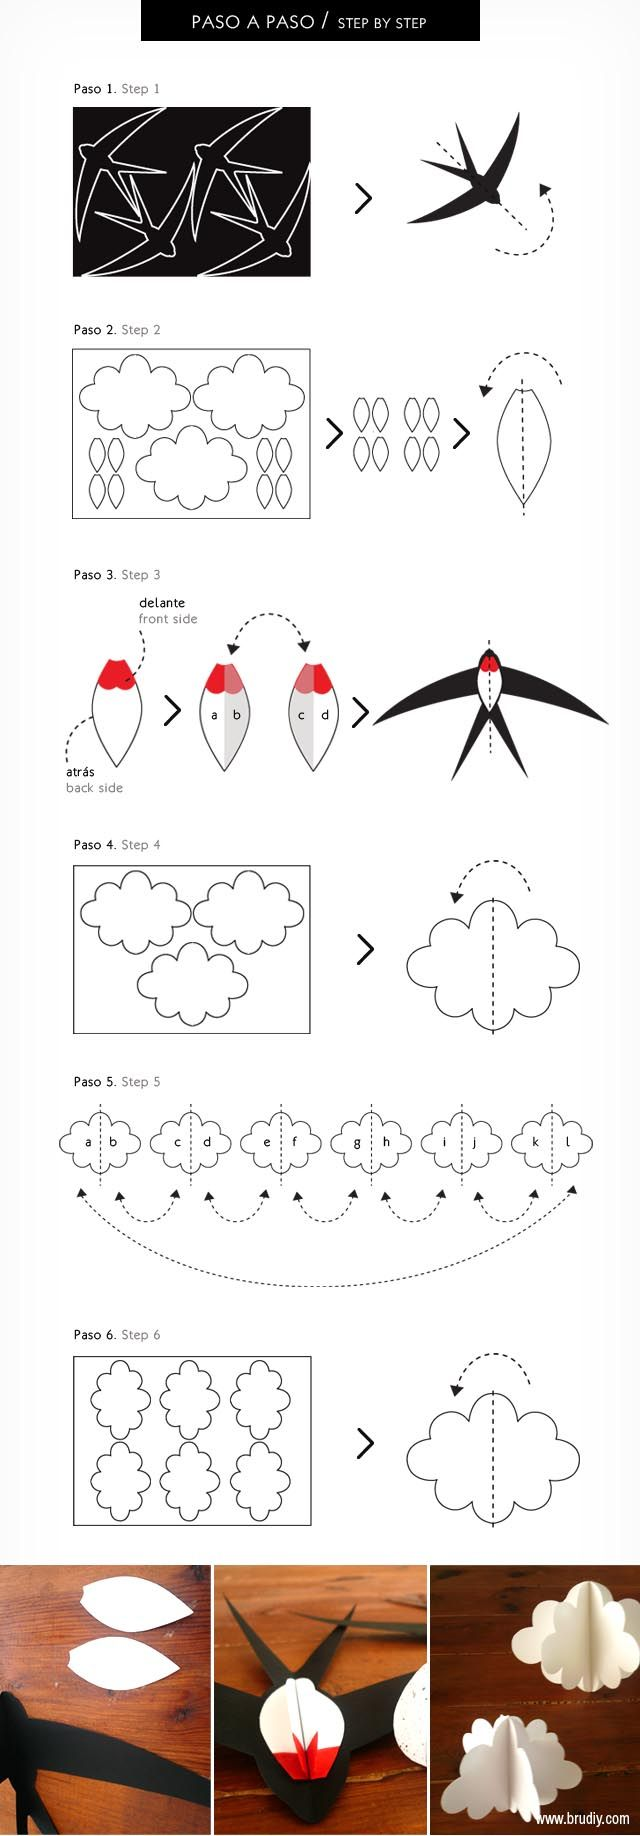 Móvil de Golondrinas / Mòbil d'Orenetes / Swallow Mobile #DIY #swallow  #paper #BruDiy #baby #home #kids #craft #templates #plantillas